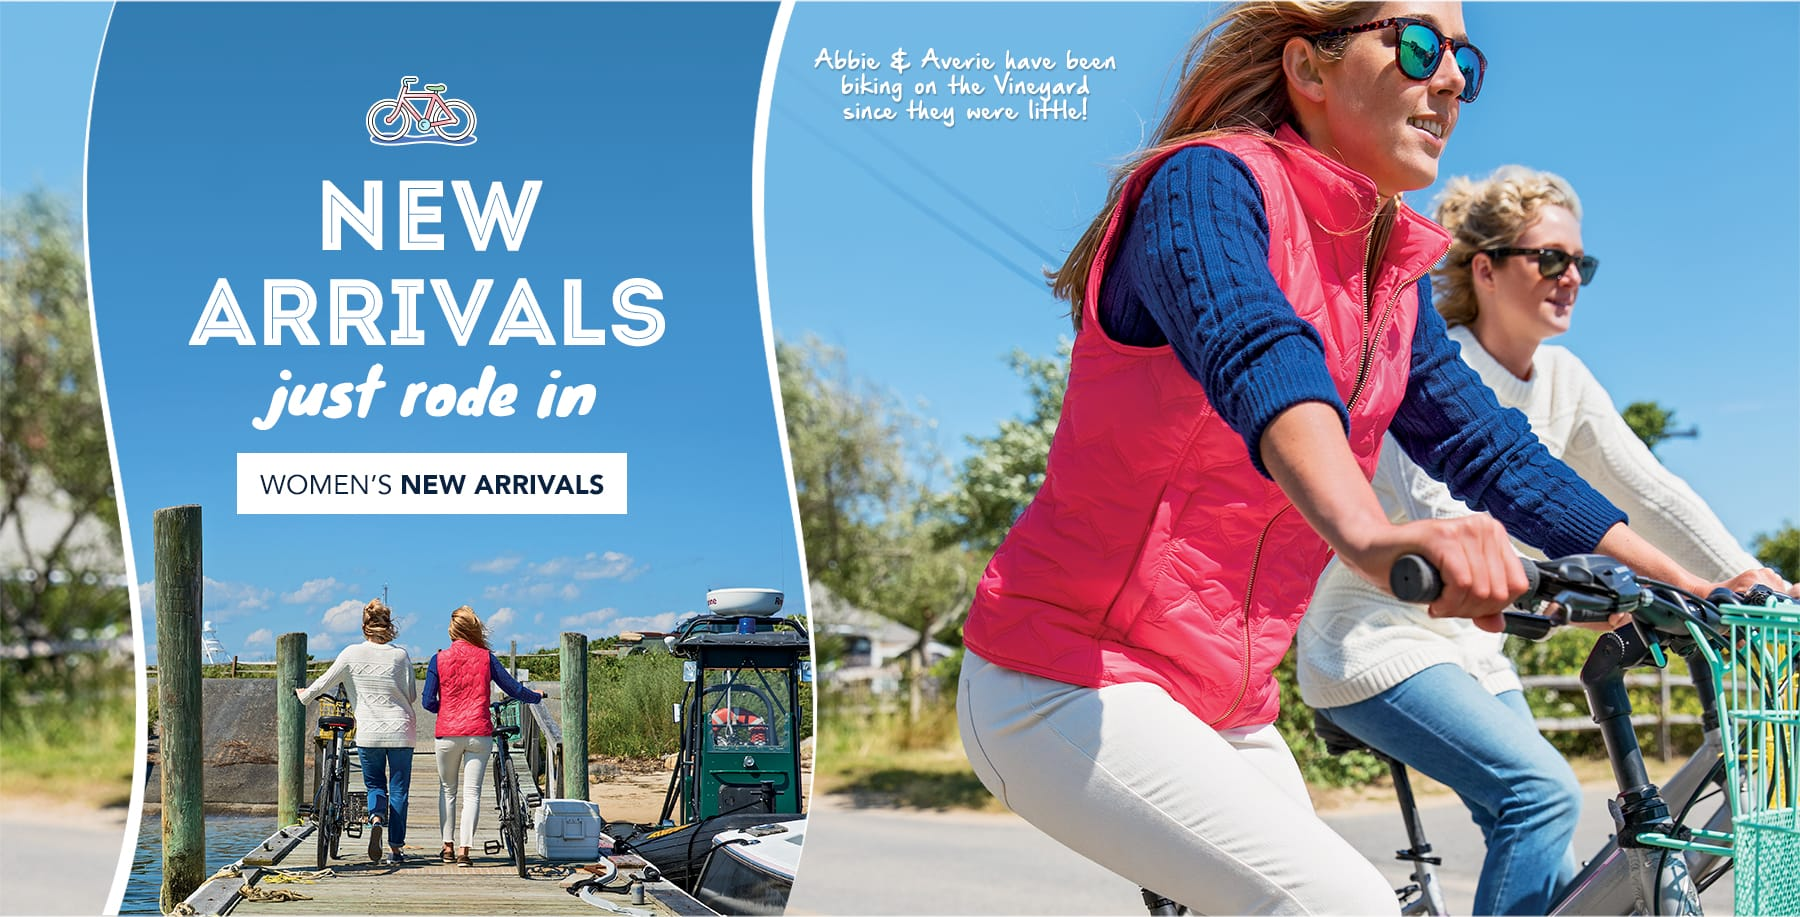 New arrivals just rode in. Shop womens new arrivals.